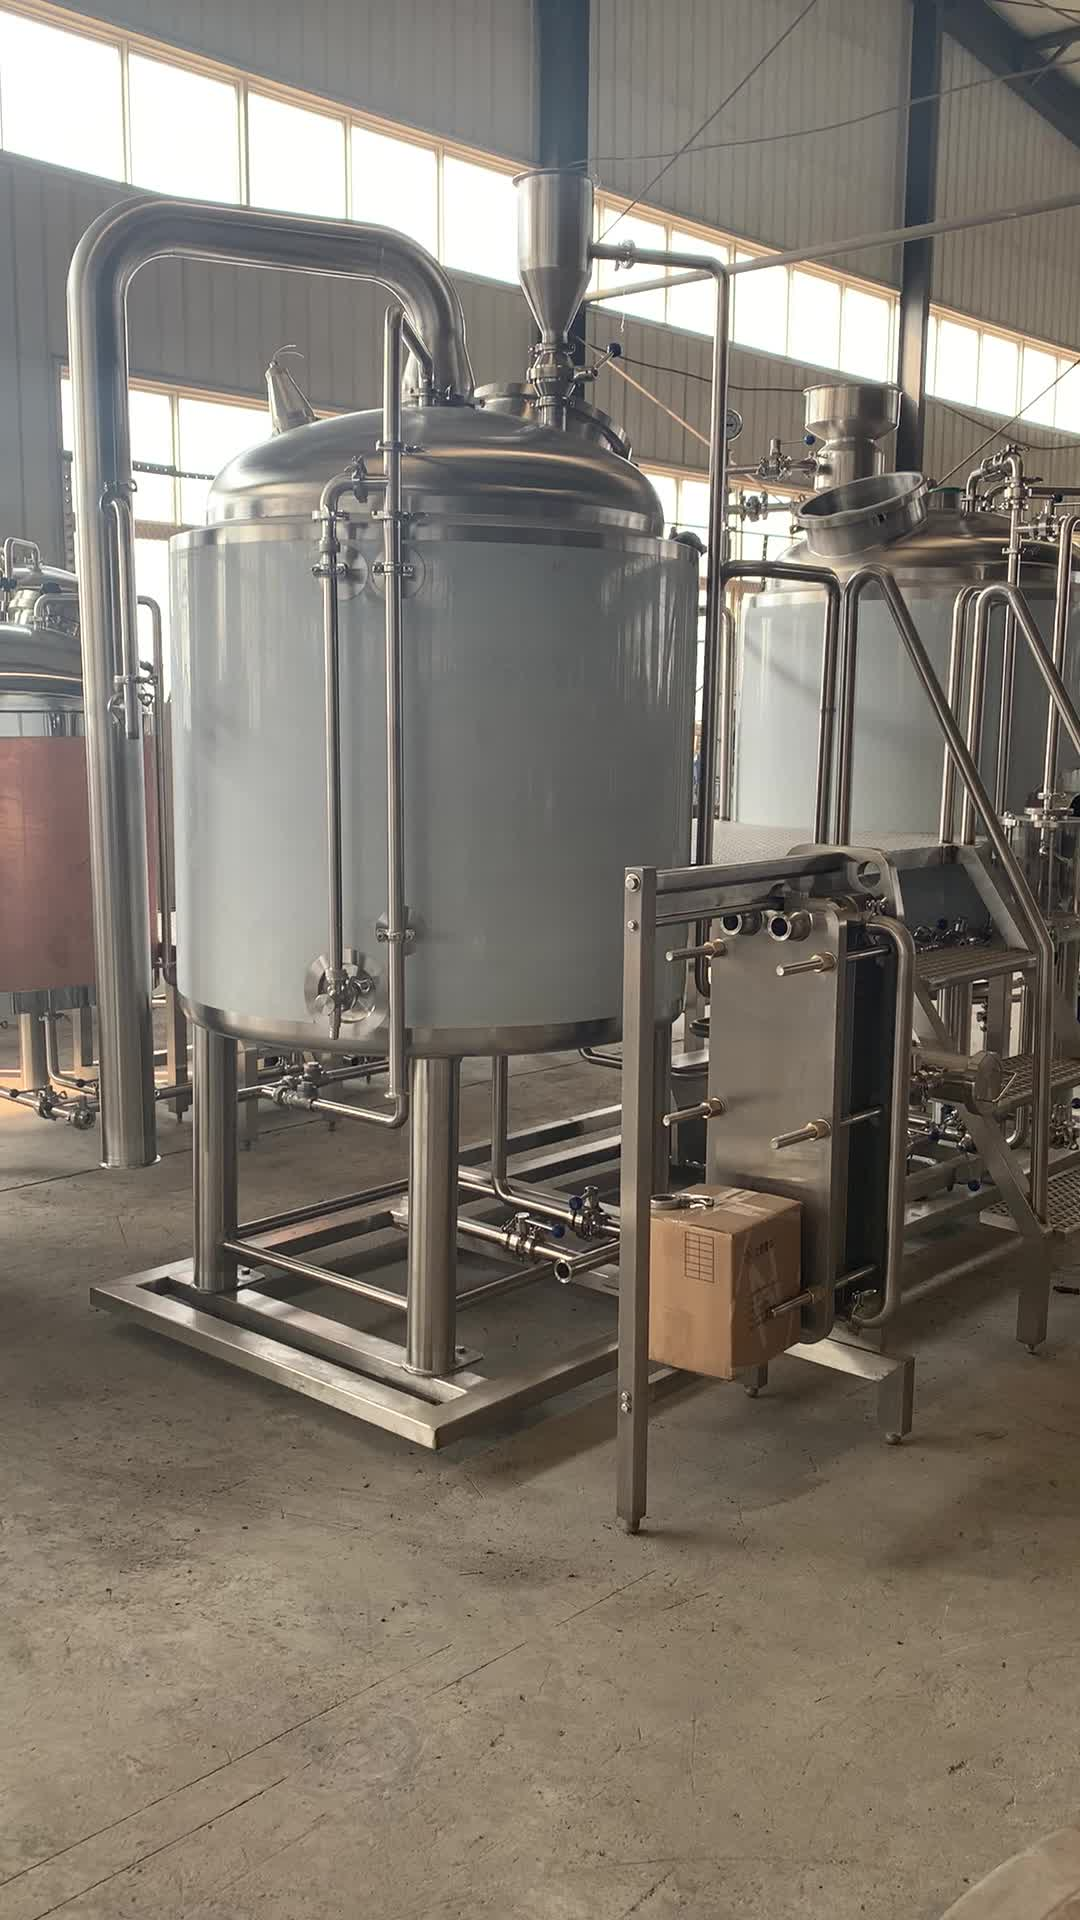 10bbl craft beer equipment,1000l craft brewery equipment,10bbl two vessel brewhouse equipment